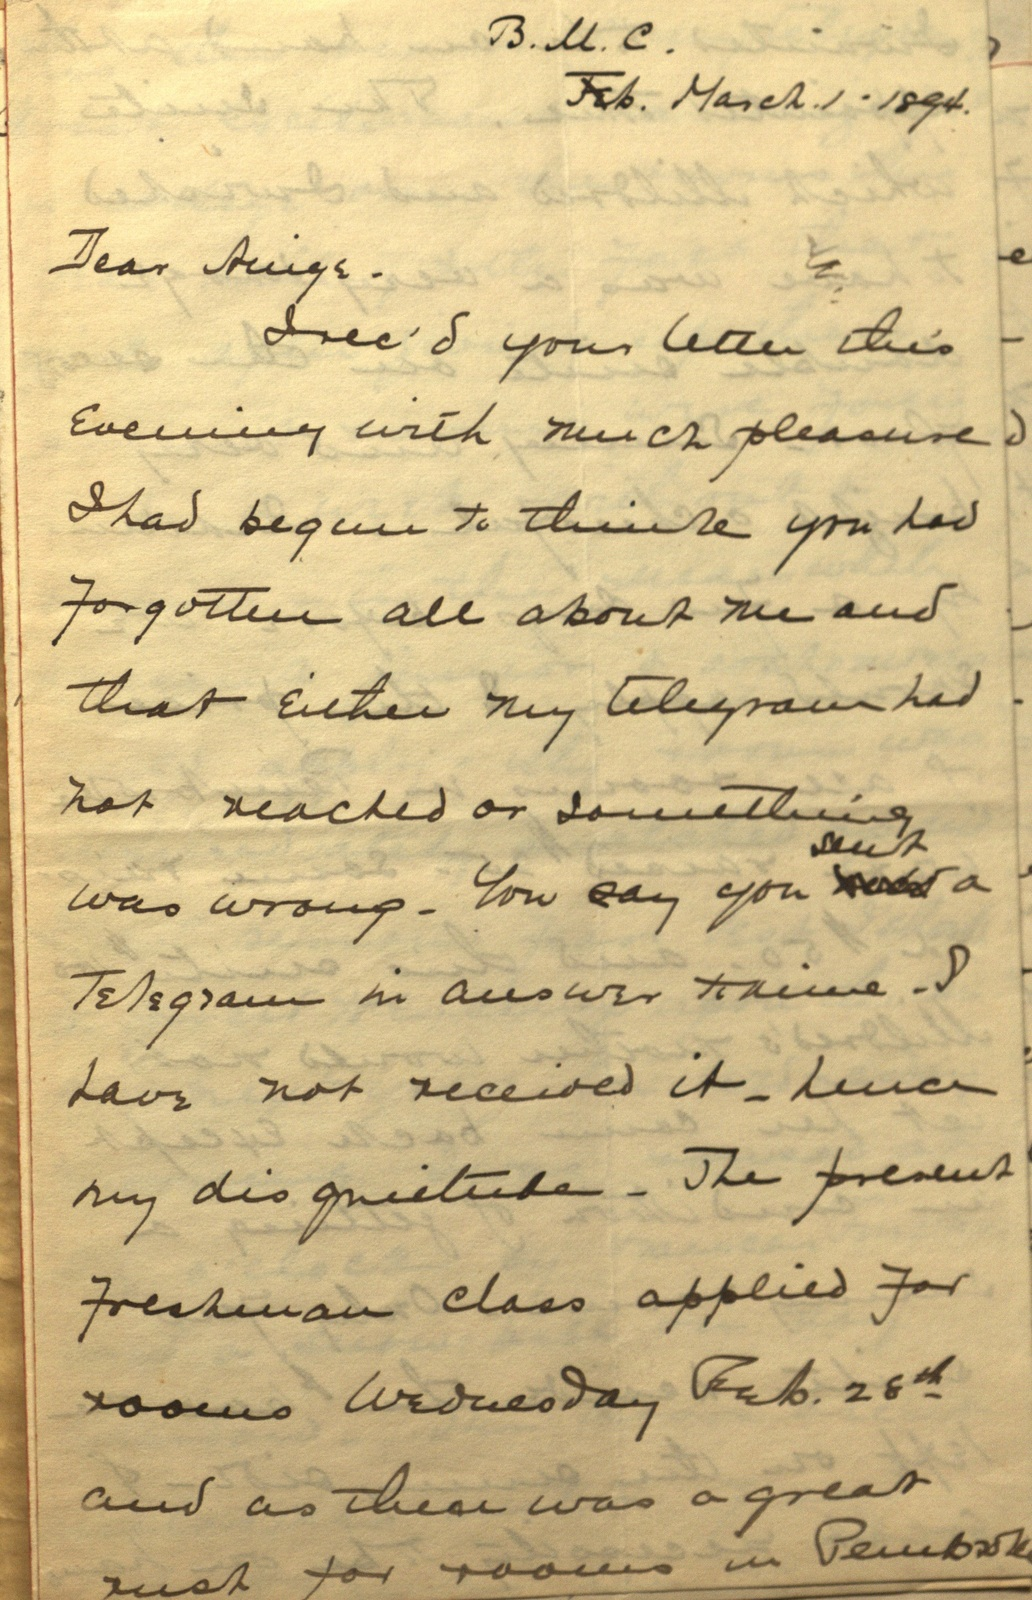 Letter from Frances Arnold to Midge